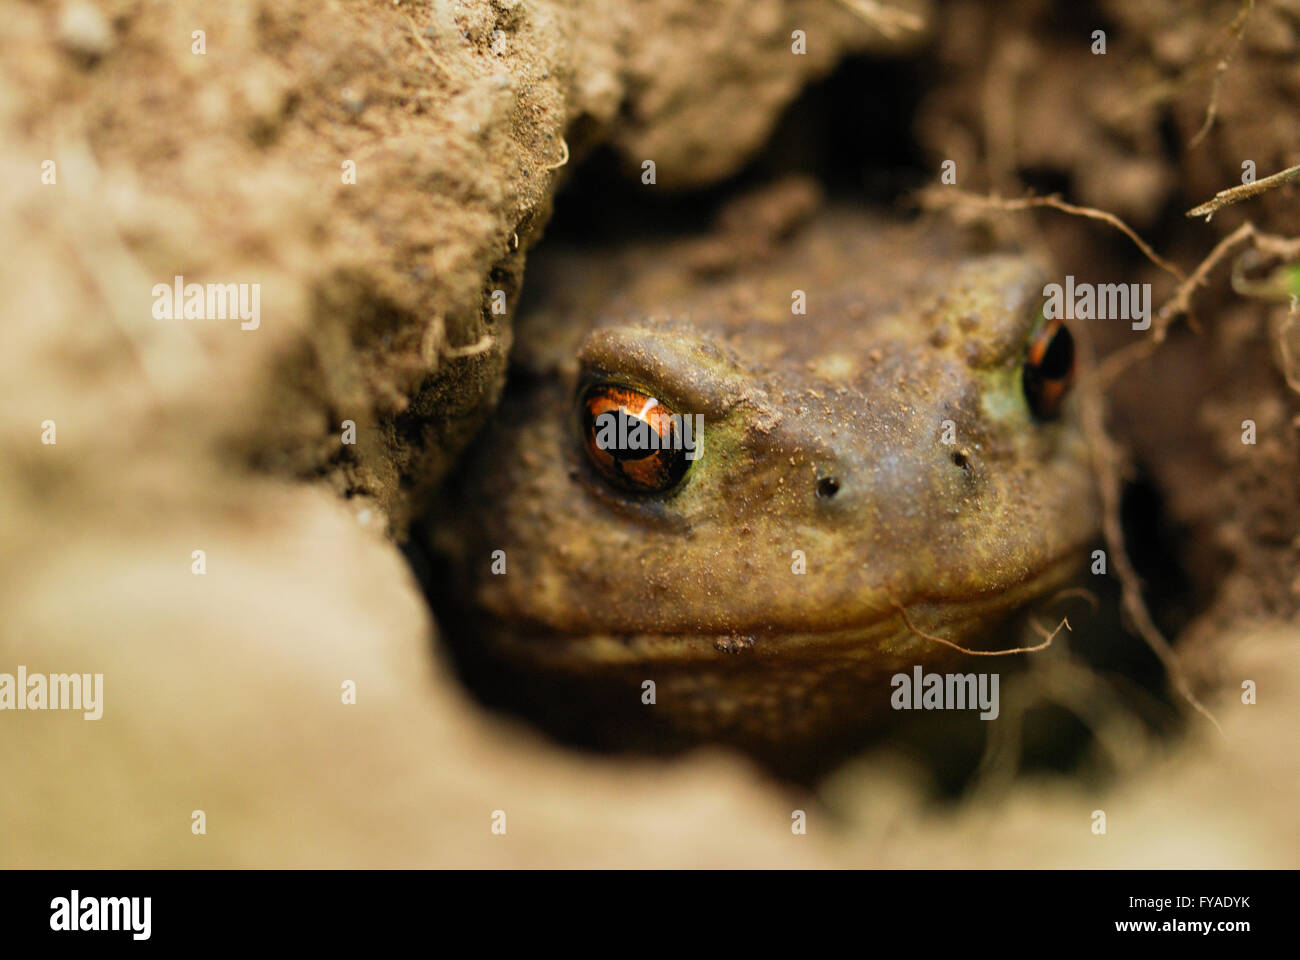 Macro photography of a toad in a hole watching you intently 2 - Stock Image